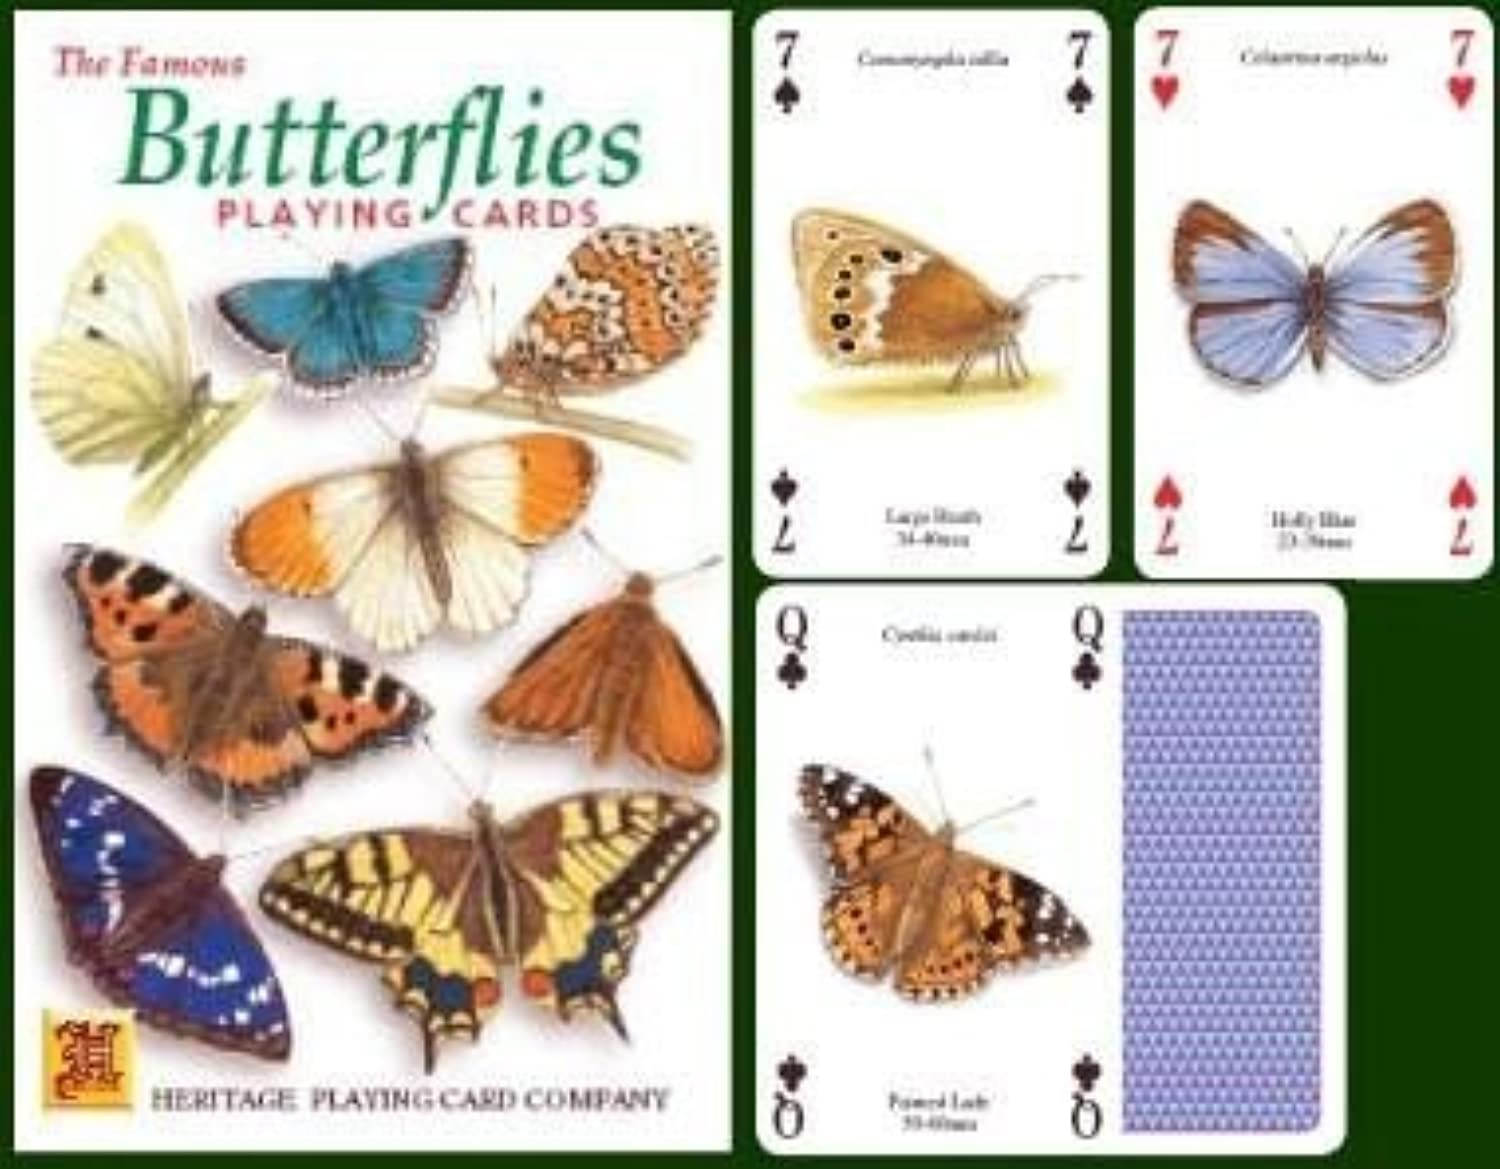 The Famous Butterflies Playing Cards by Heritage Playing Card